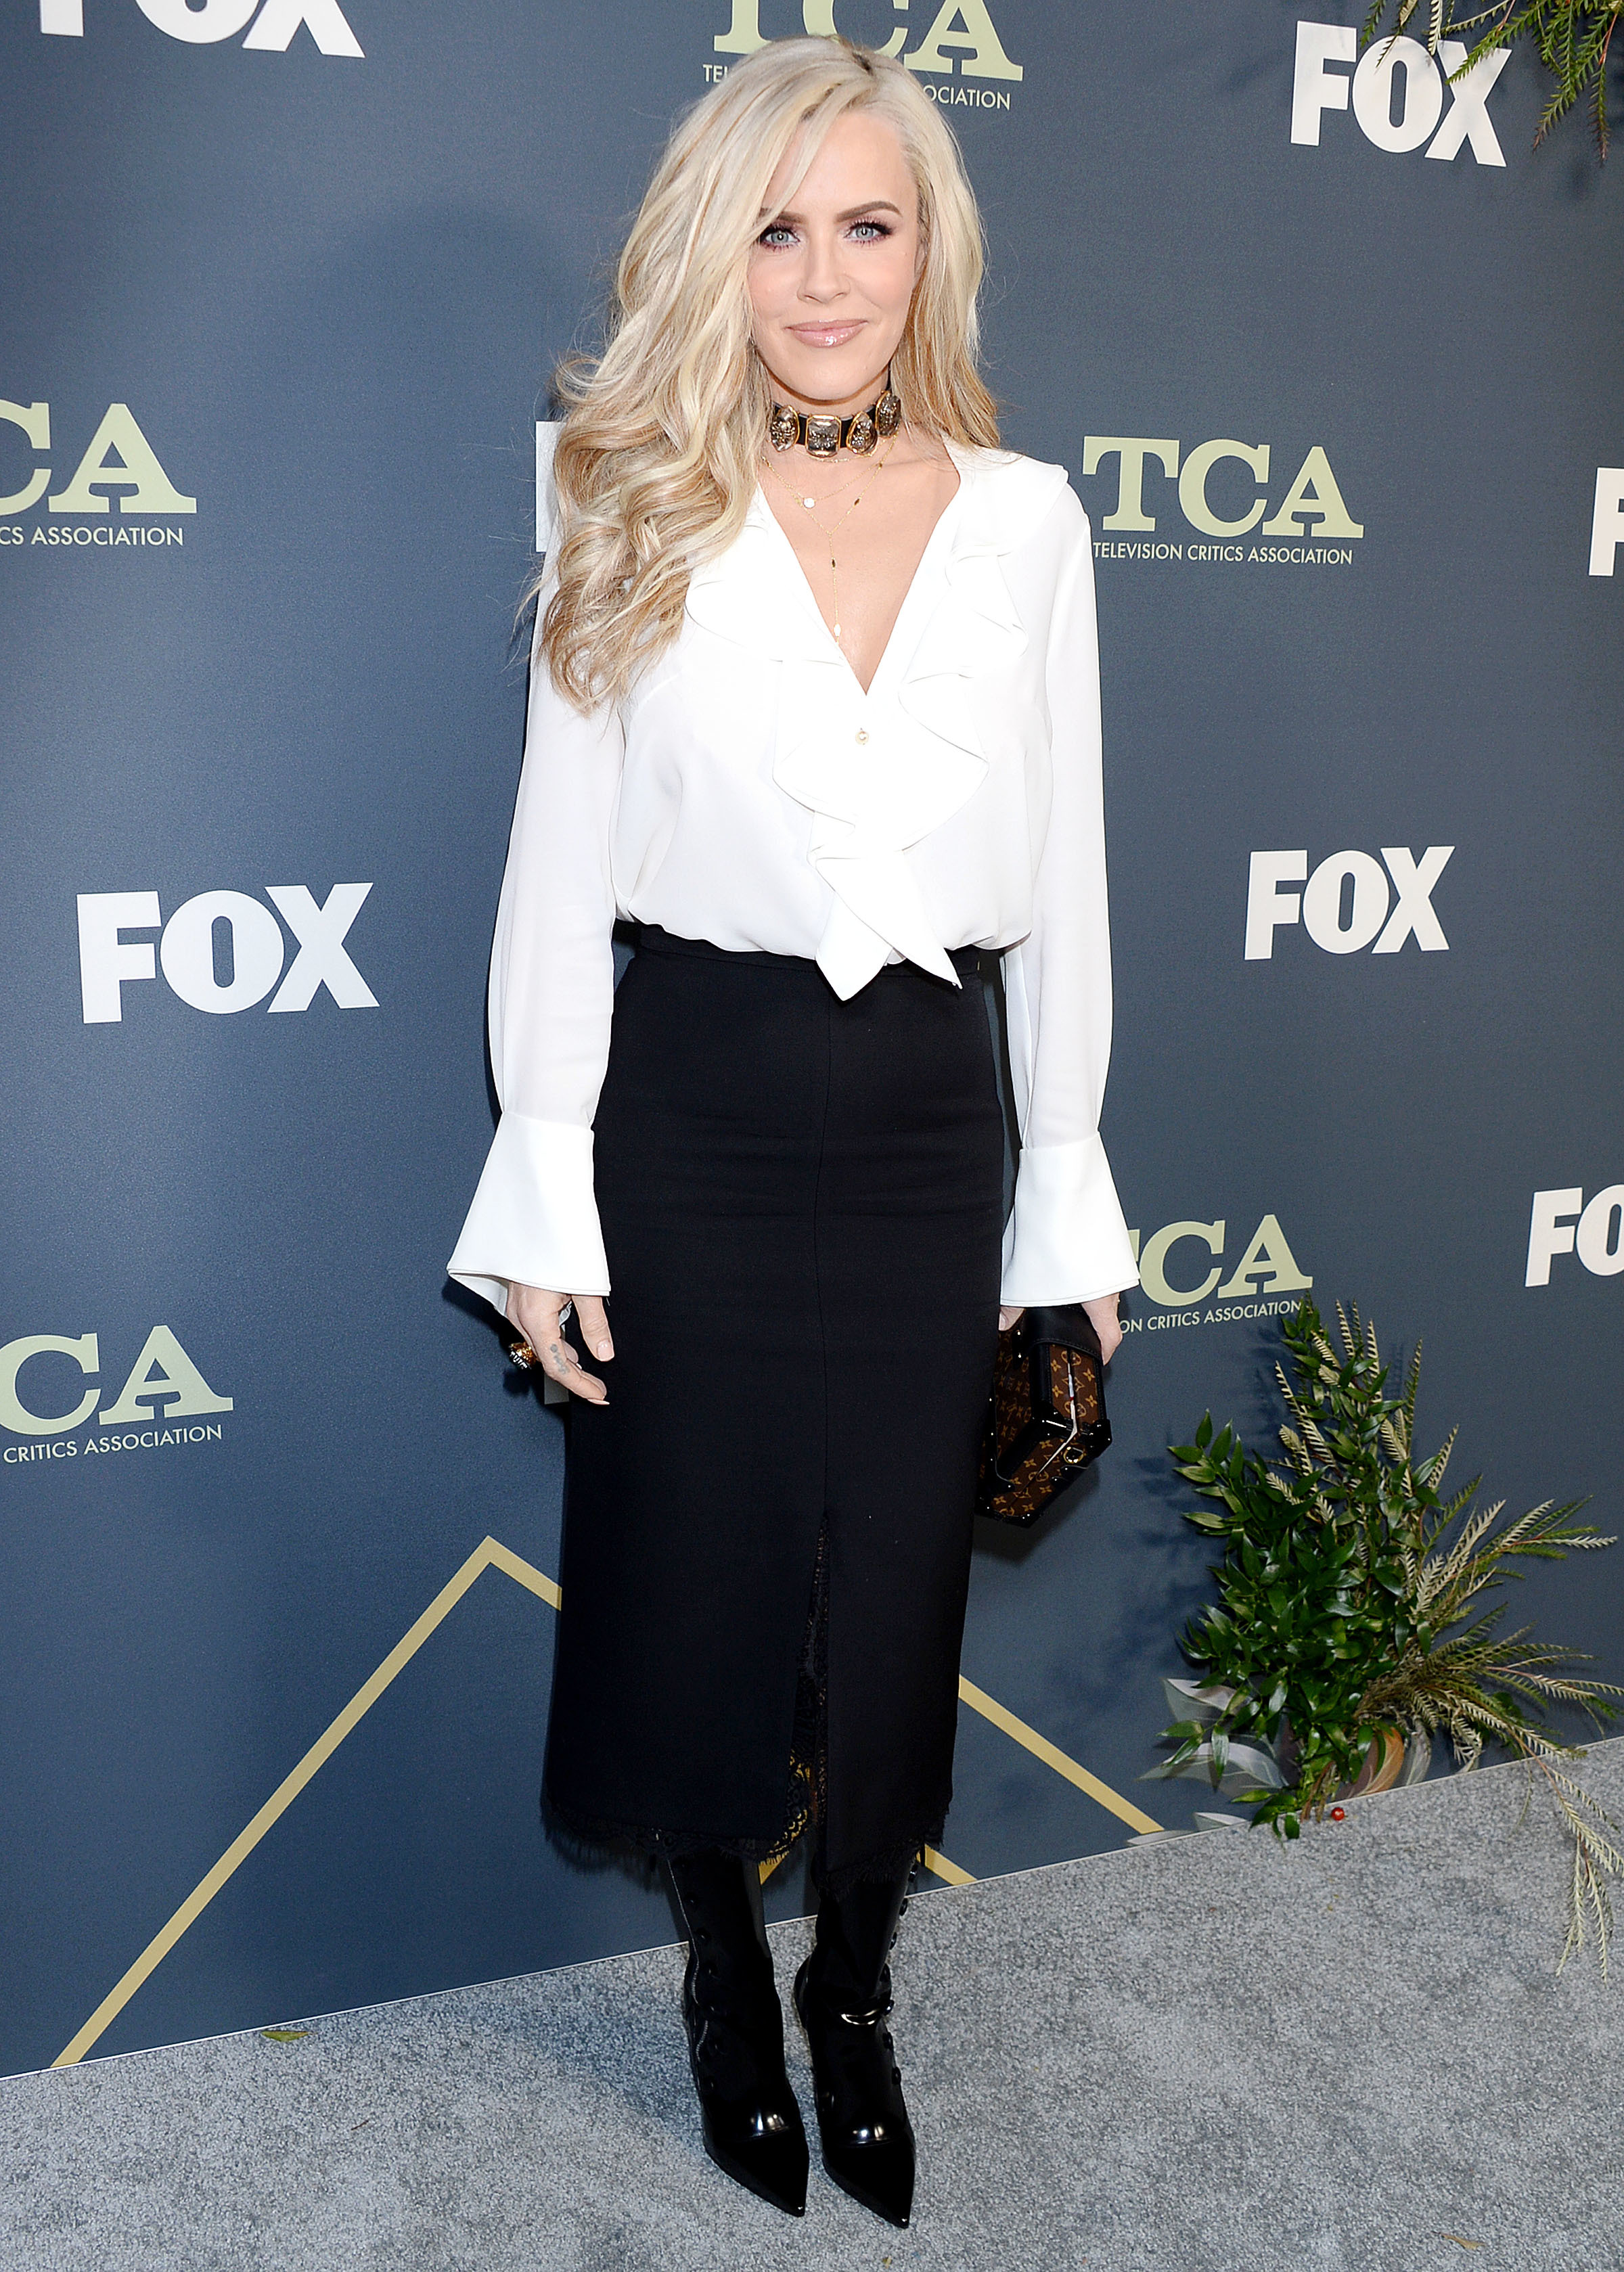 Jenny McCarthy attends the Fox Winter All Star Party during the TCA Winter Press Tour in Los Angeles on Feb. 6, 2019.